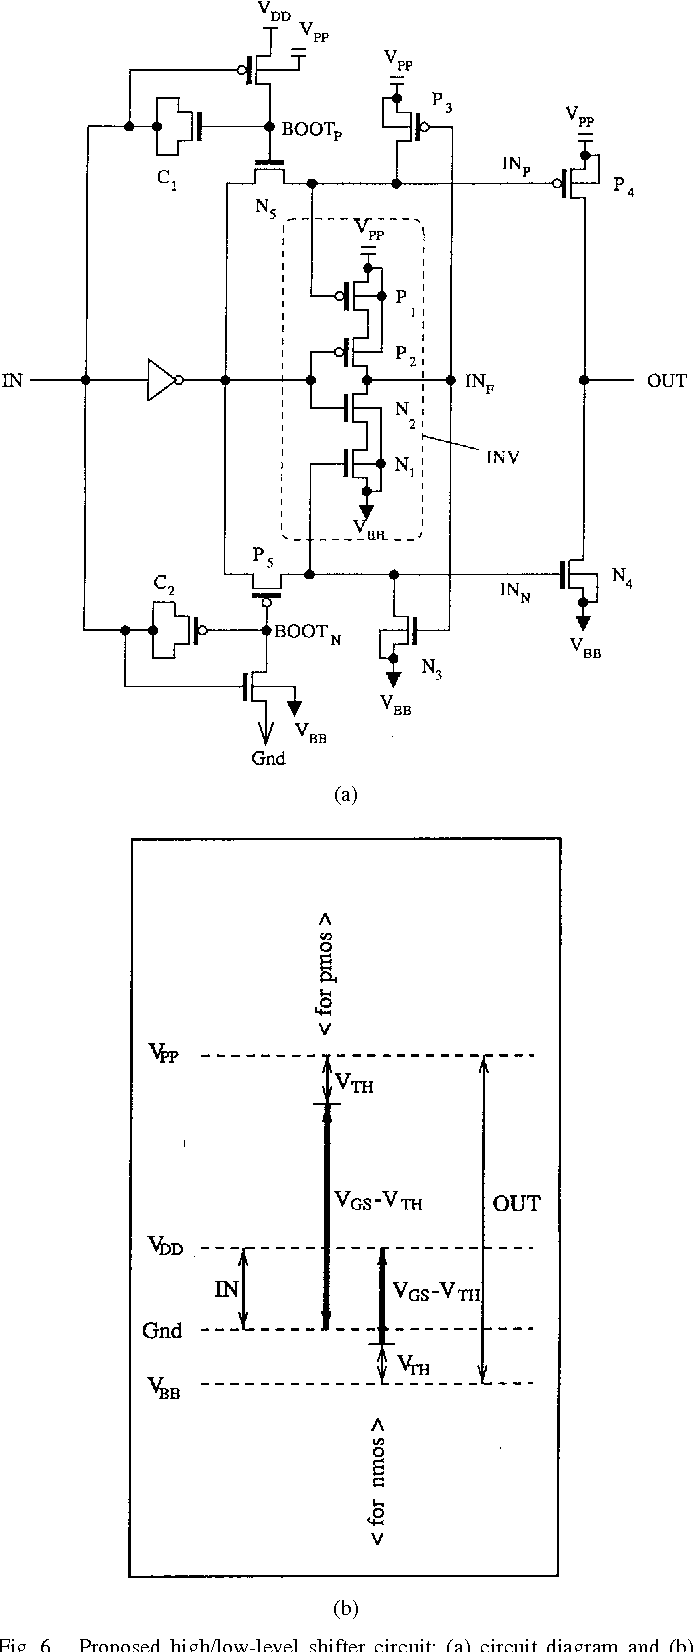 hight resolution of proposed high low level shifter circuit a